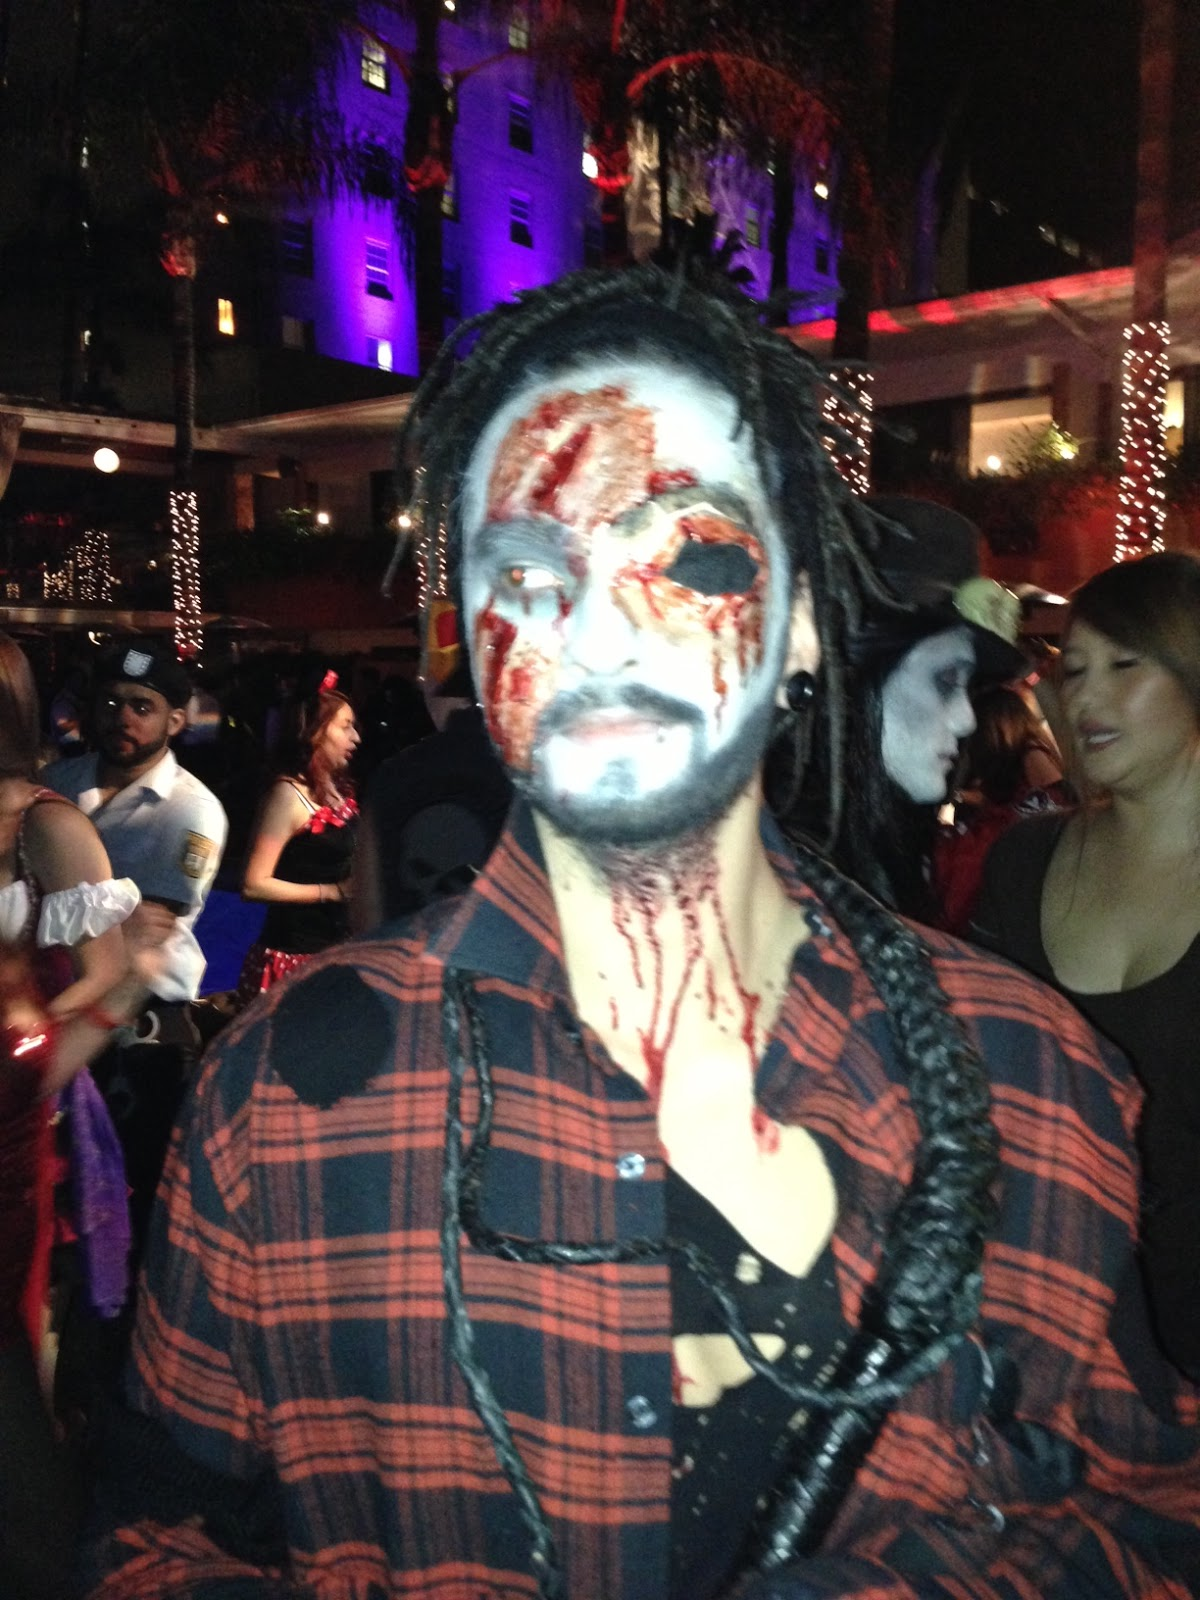 thnoise: bill & tom - halloween at the roosevelt la, usa 2012